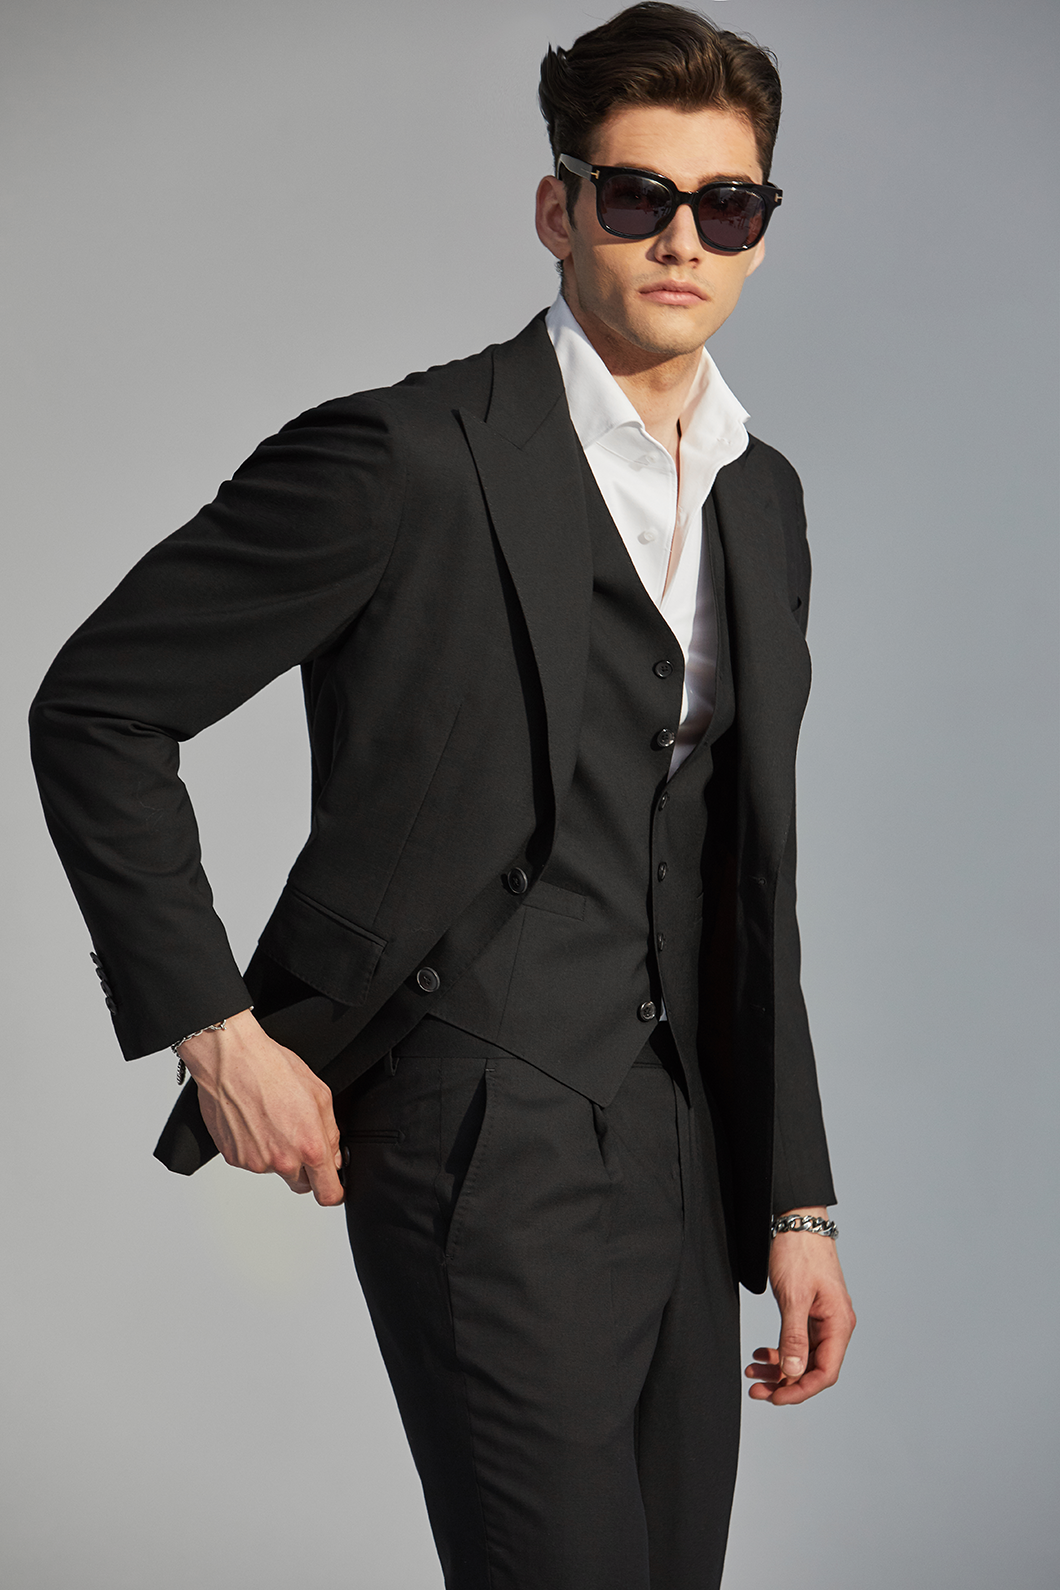 545 BLACK3 PEAKED SUIT-BLACK품절임박